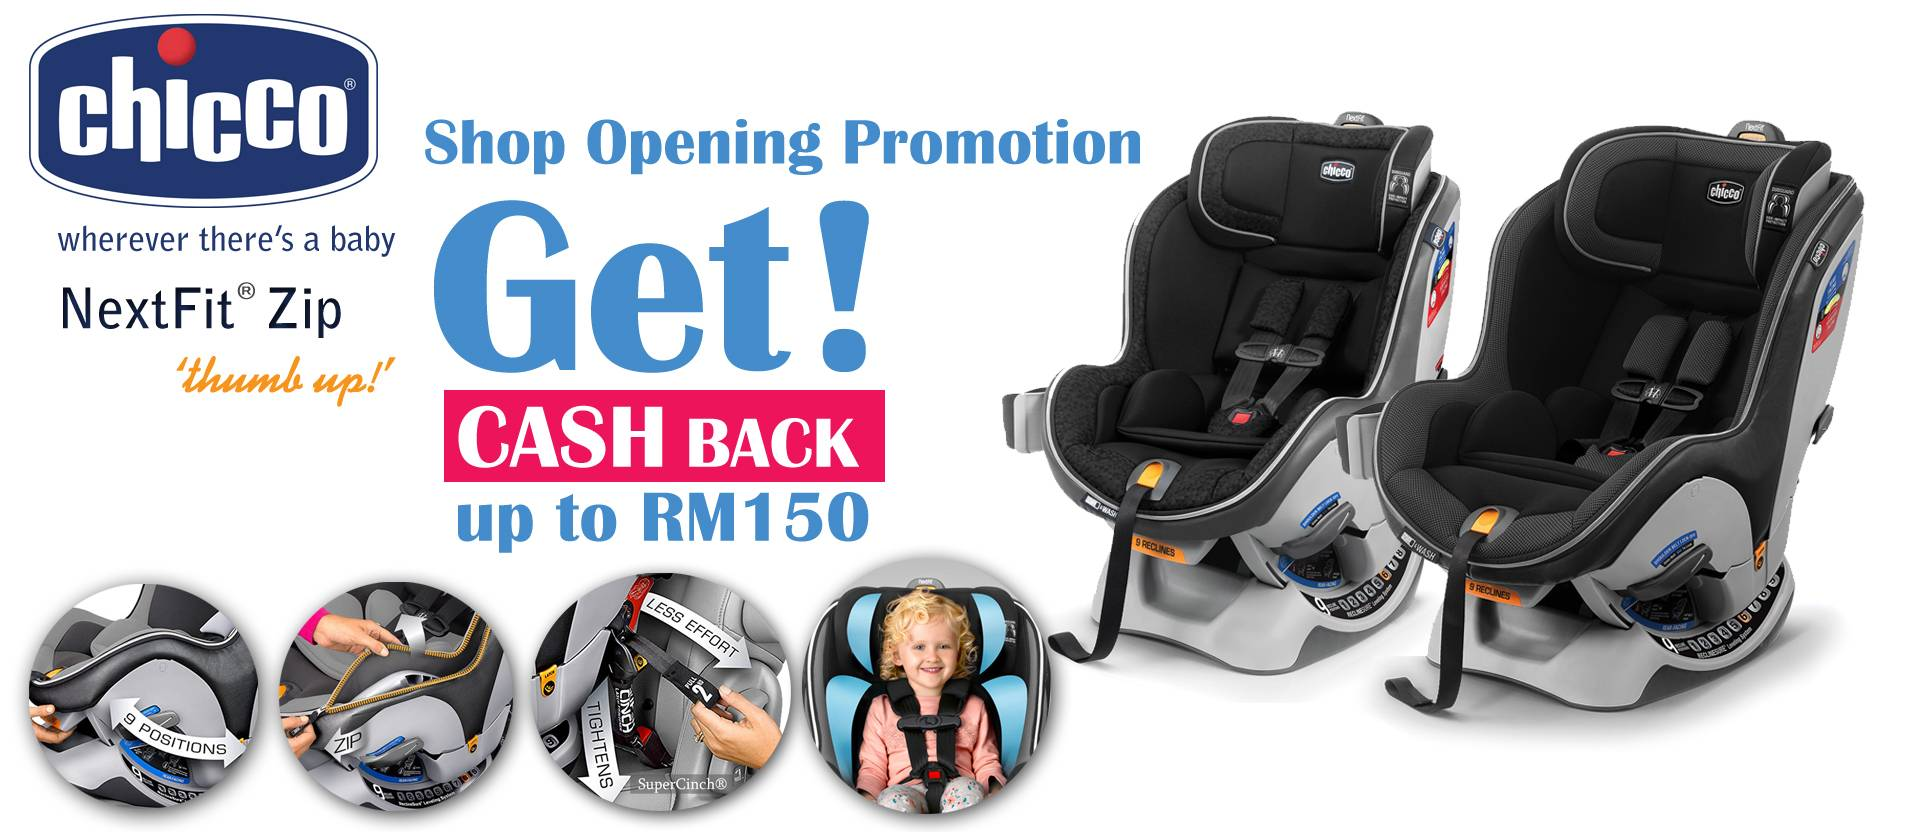 chicco-netfit-zip-car-seat-promotion